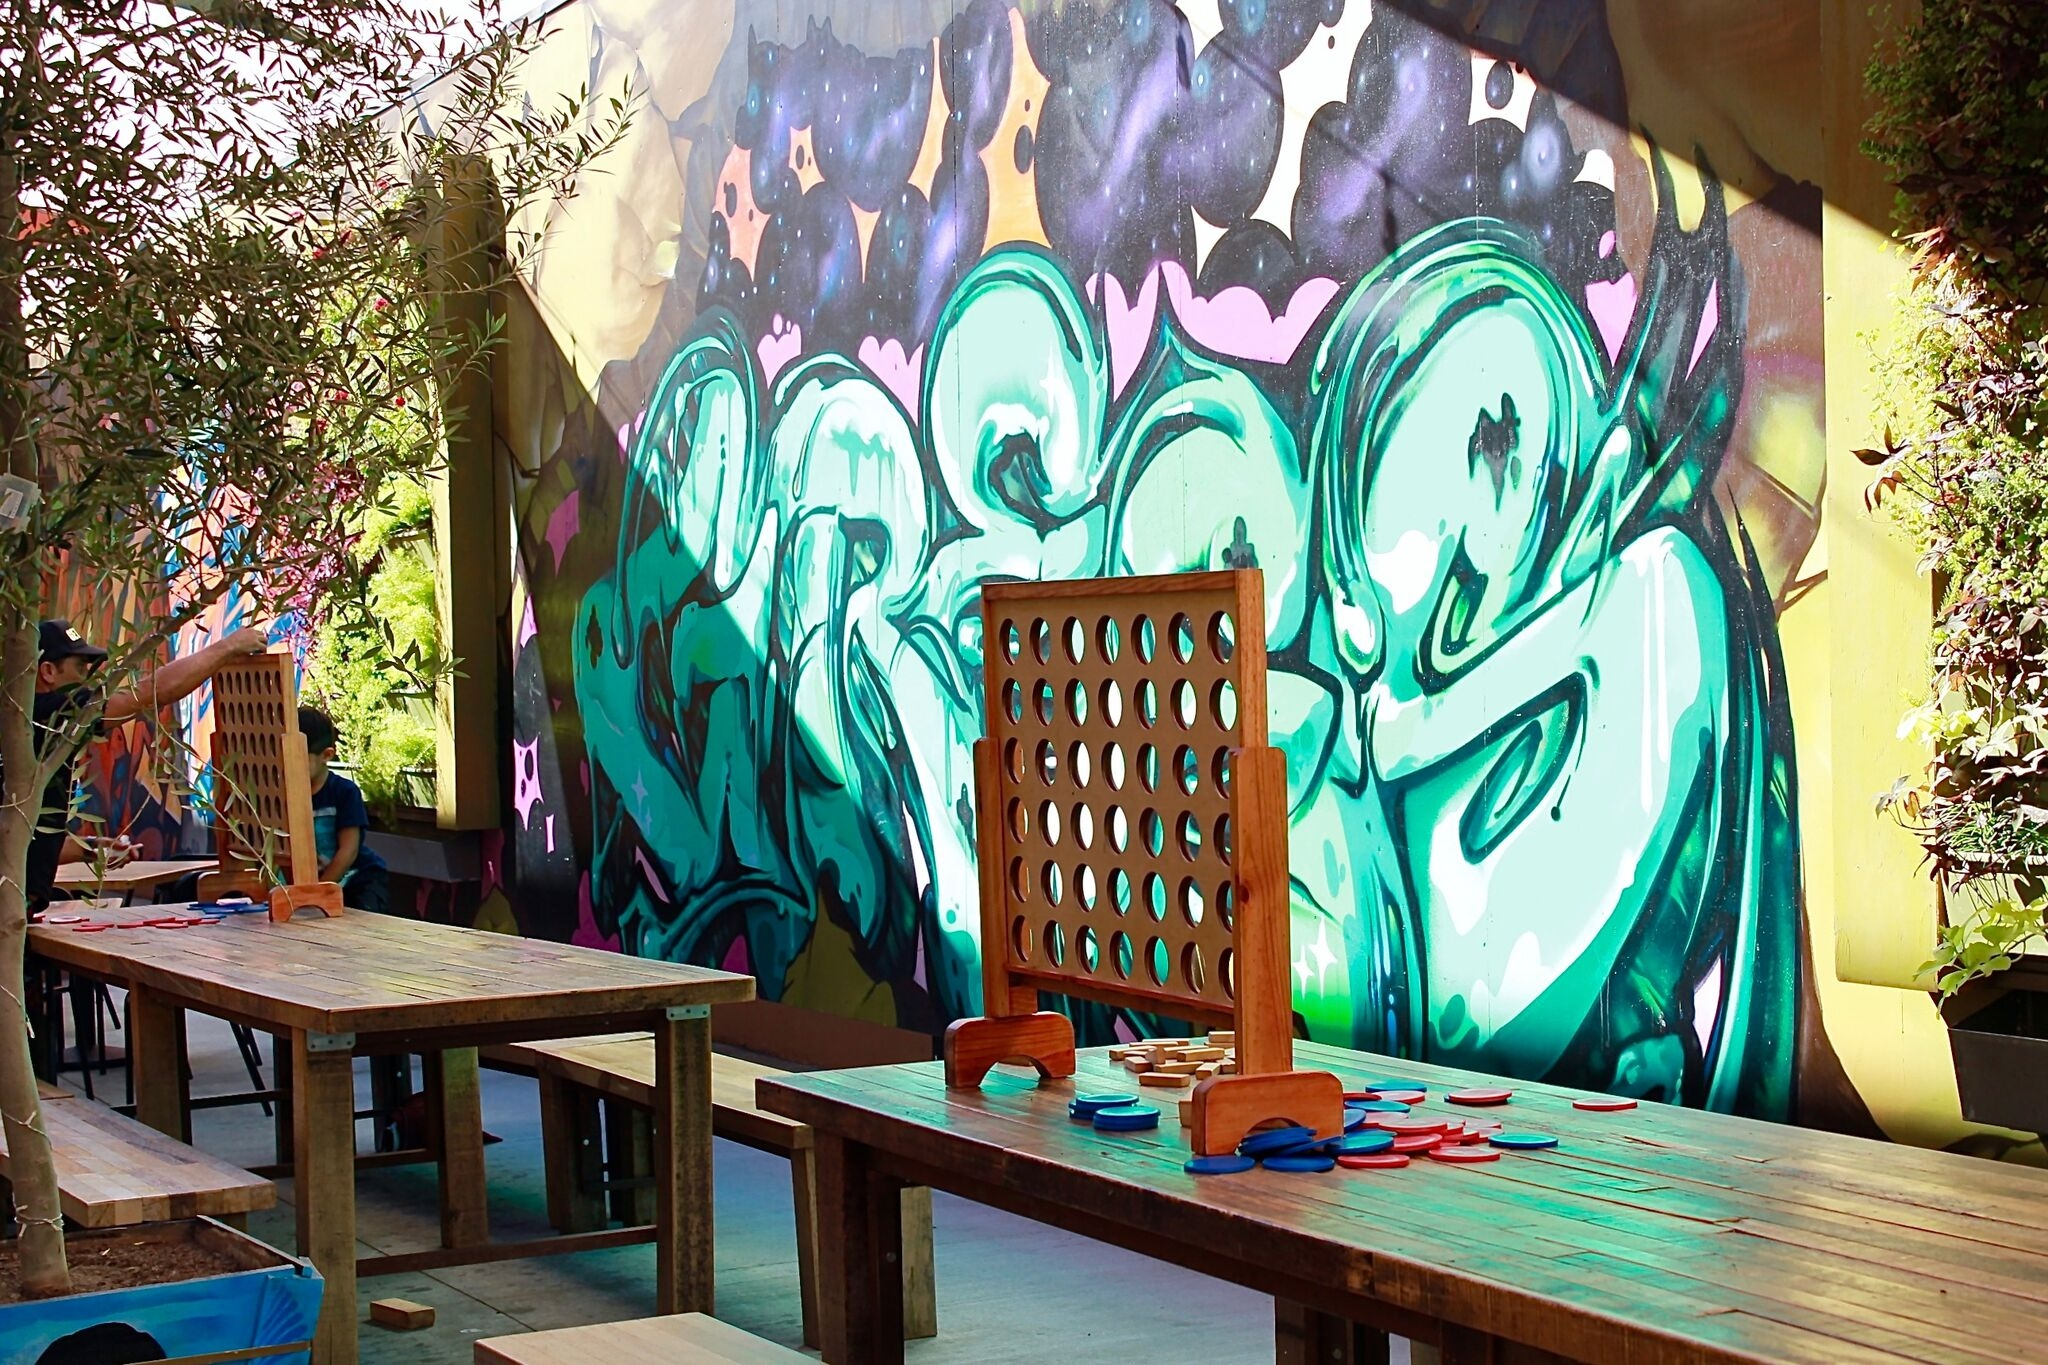 Kids and adults alike will love the varietal food options, not to mention the award winning patio which comes complete with games, at 4th Street Market in DTSA | photo courtesy of 100eats